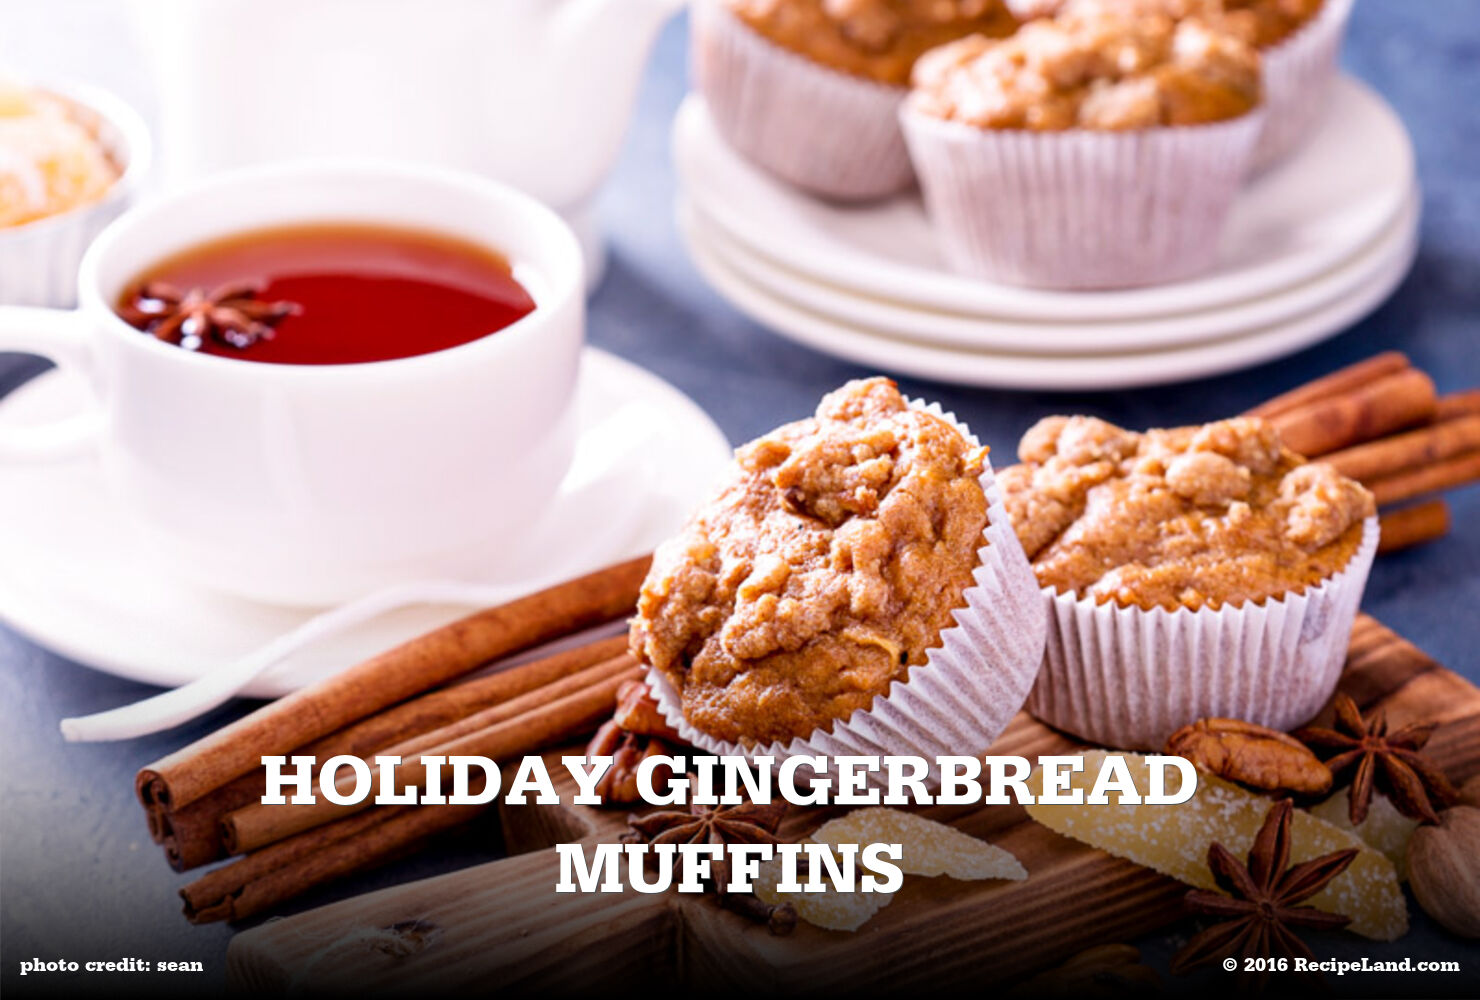 Holiday Gingerbread Muffins